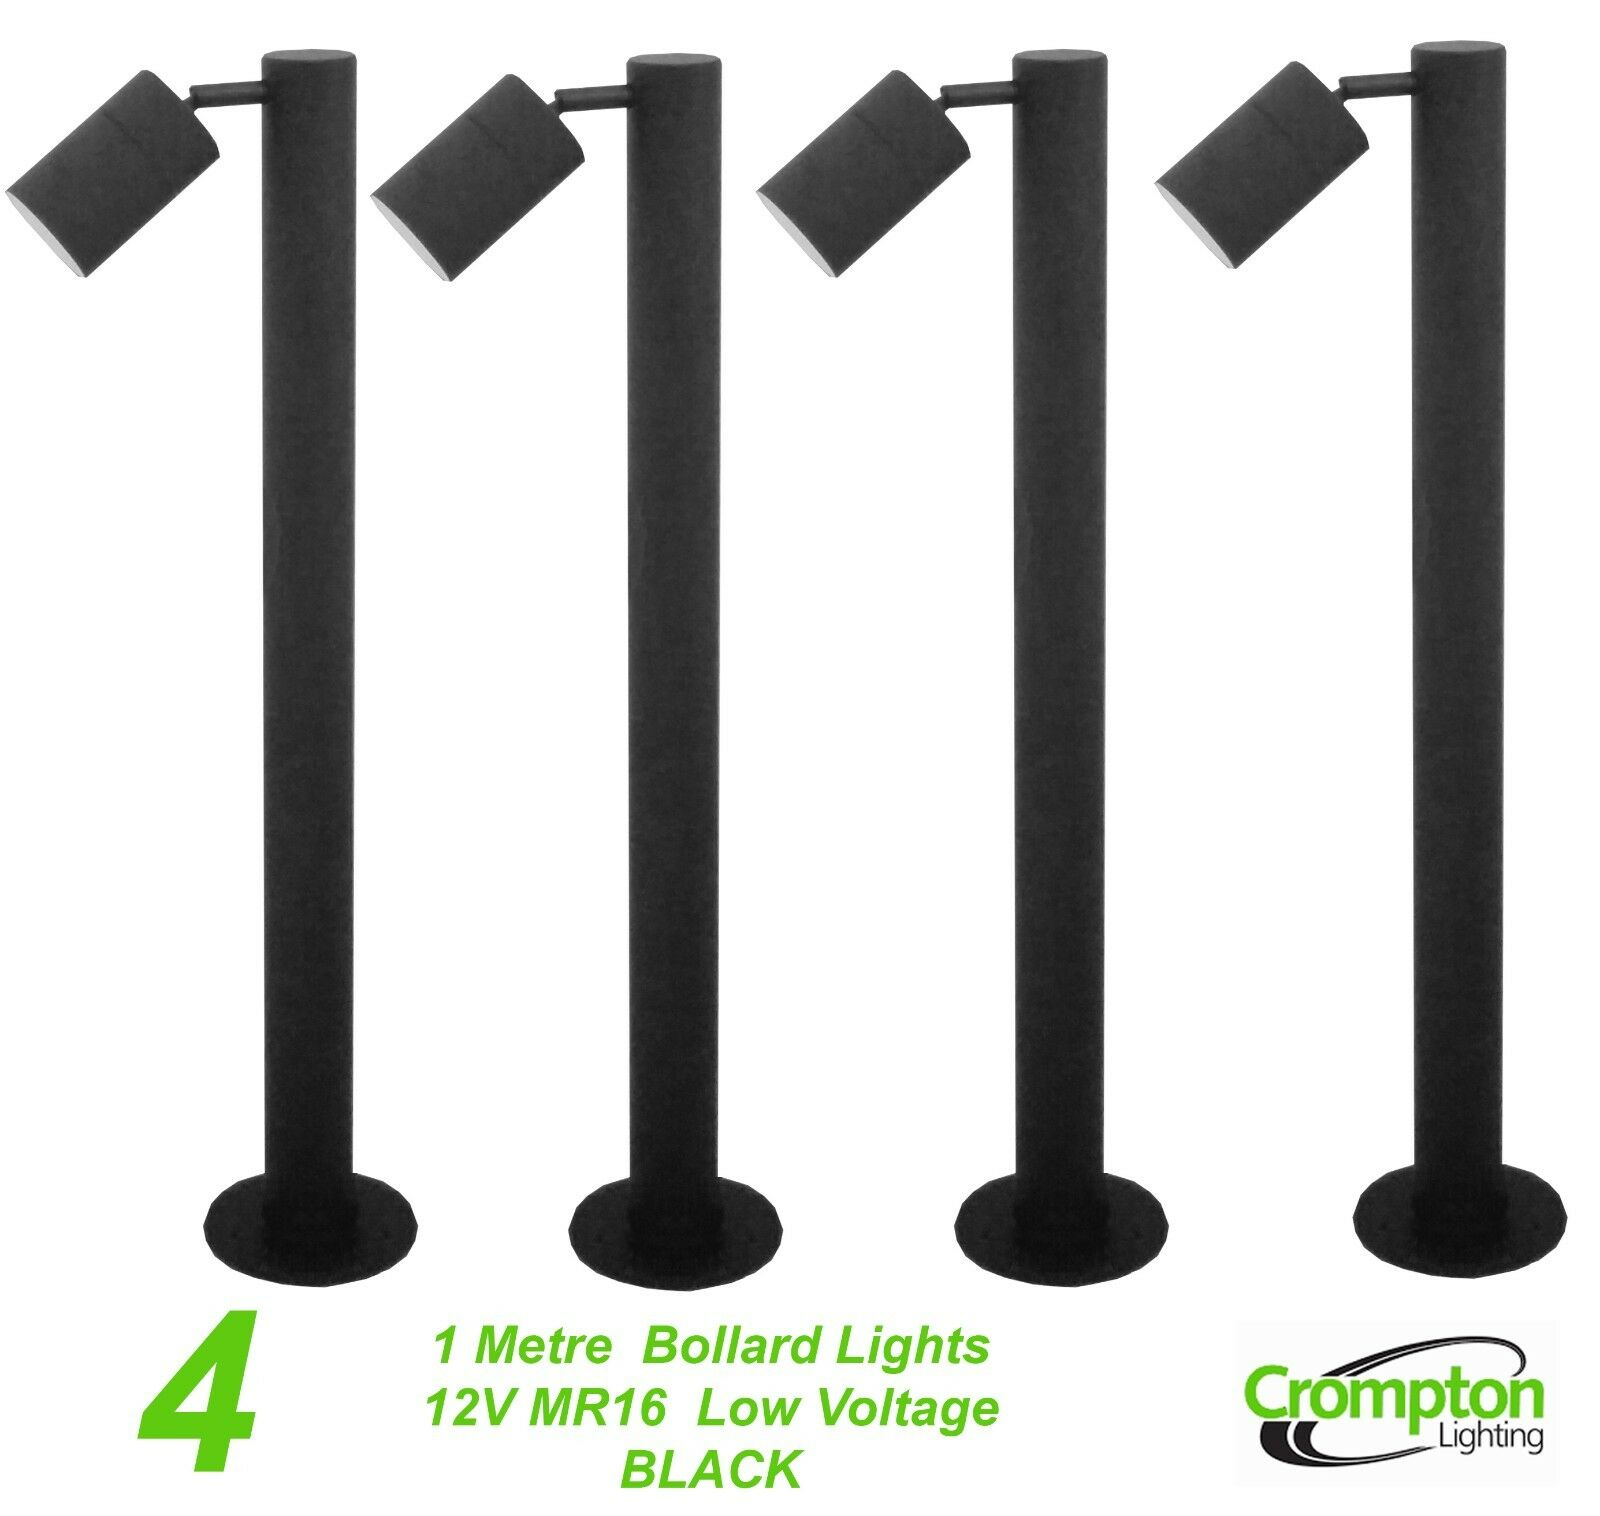 4 x schwarz 1 Metre DIY Garden Adjustable Bollard Light 12V MR16 Low Voltage